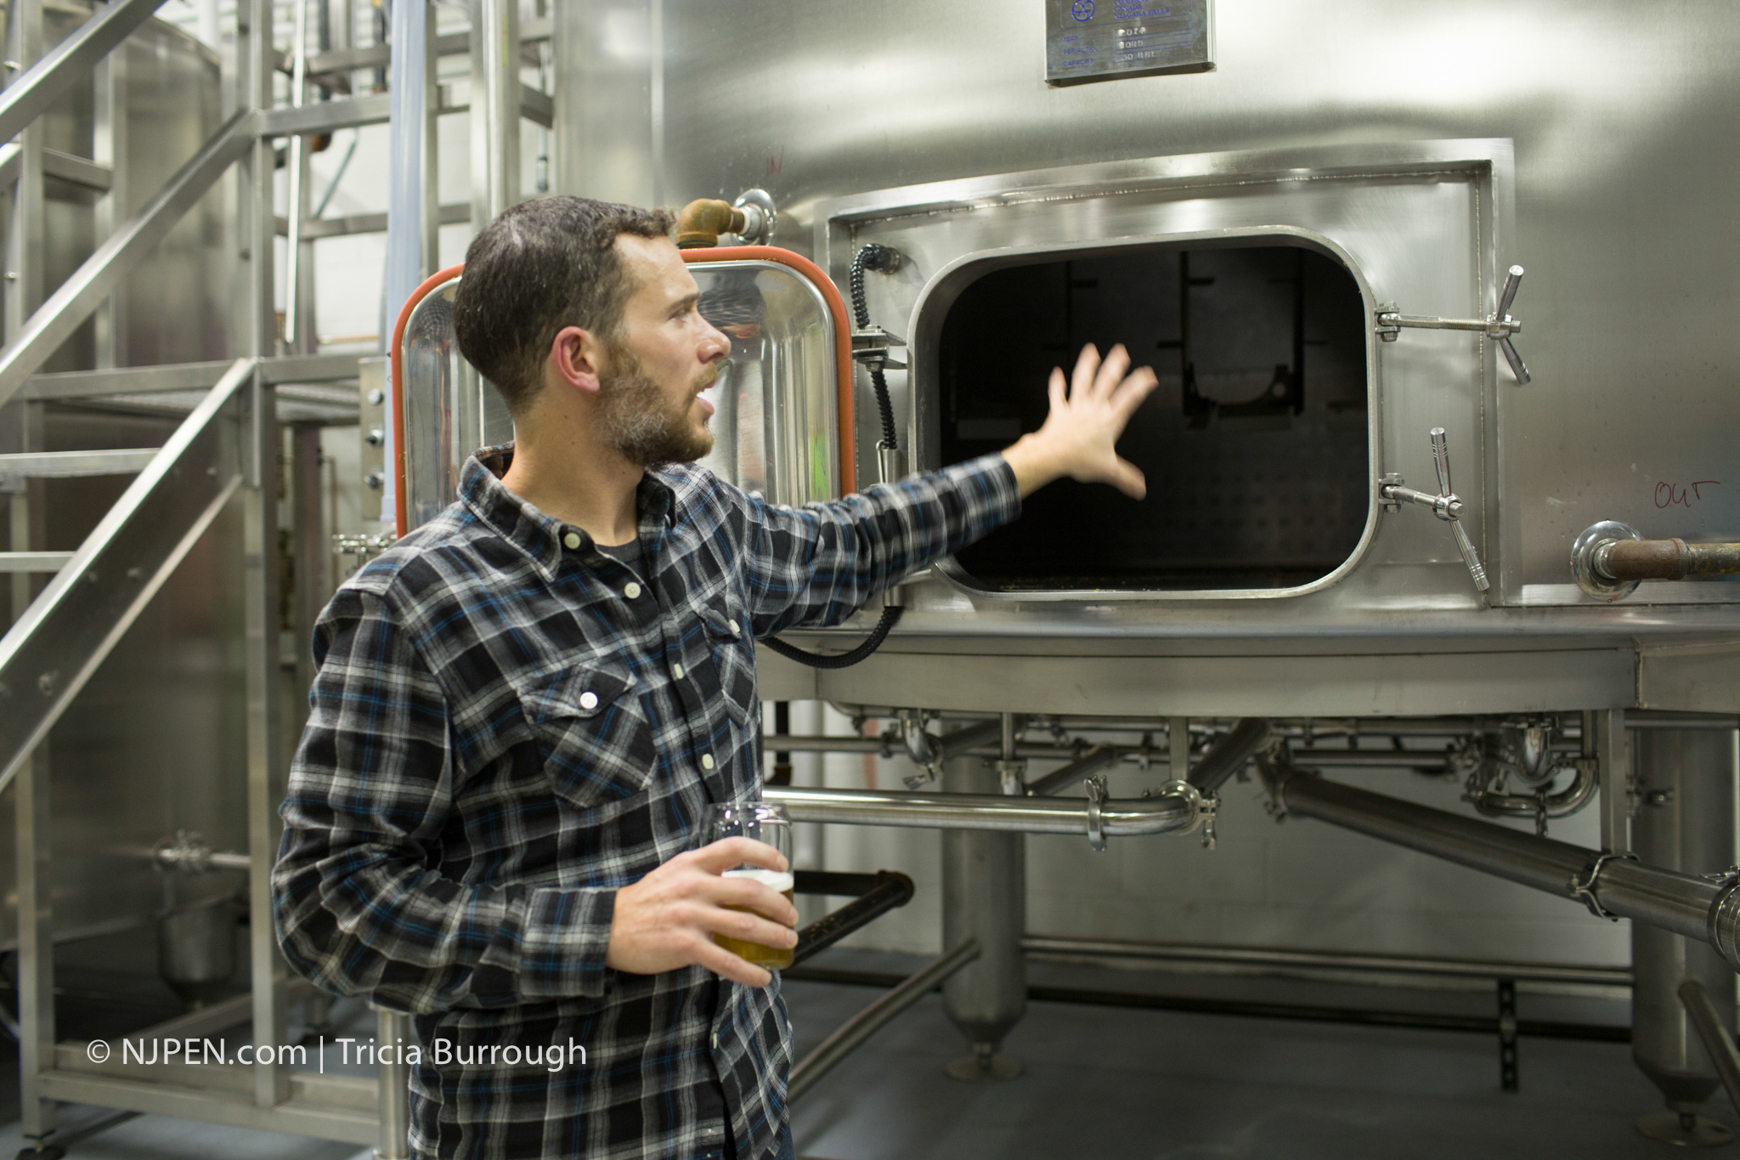 Bronstein explains the brewing process. Credit: Tricia Burrough.